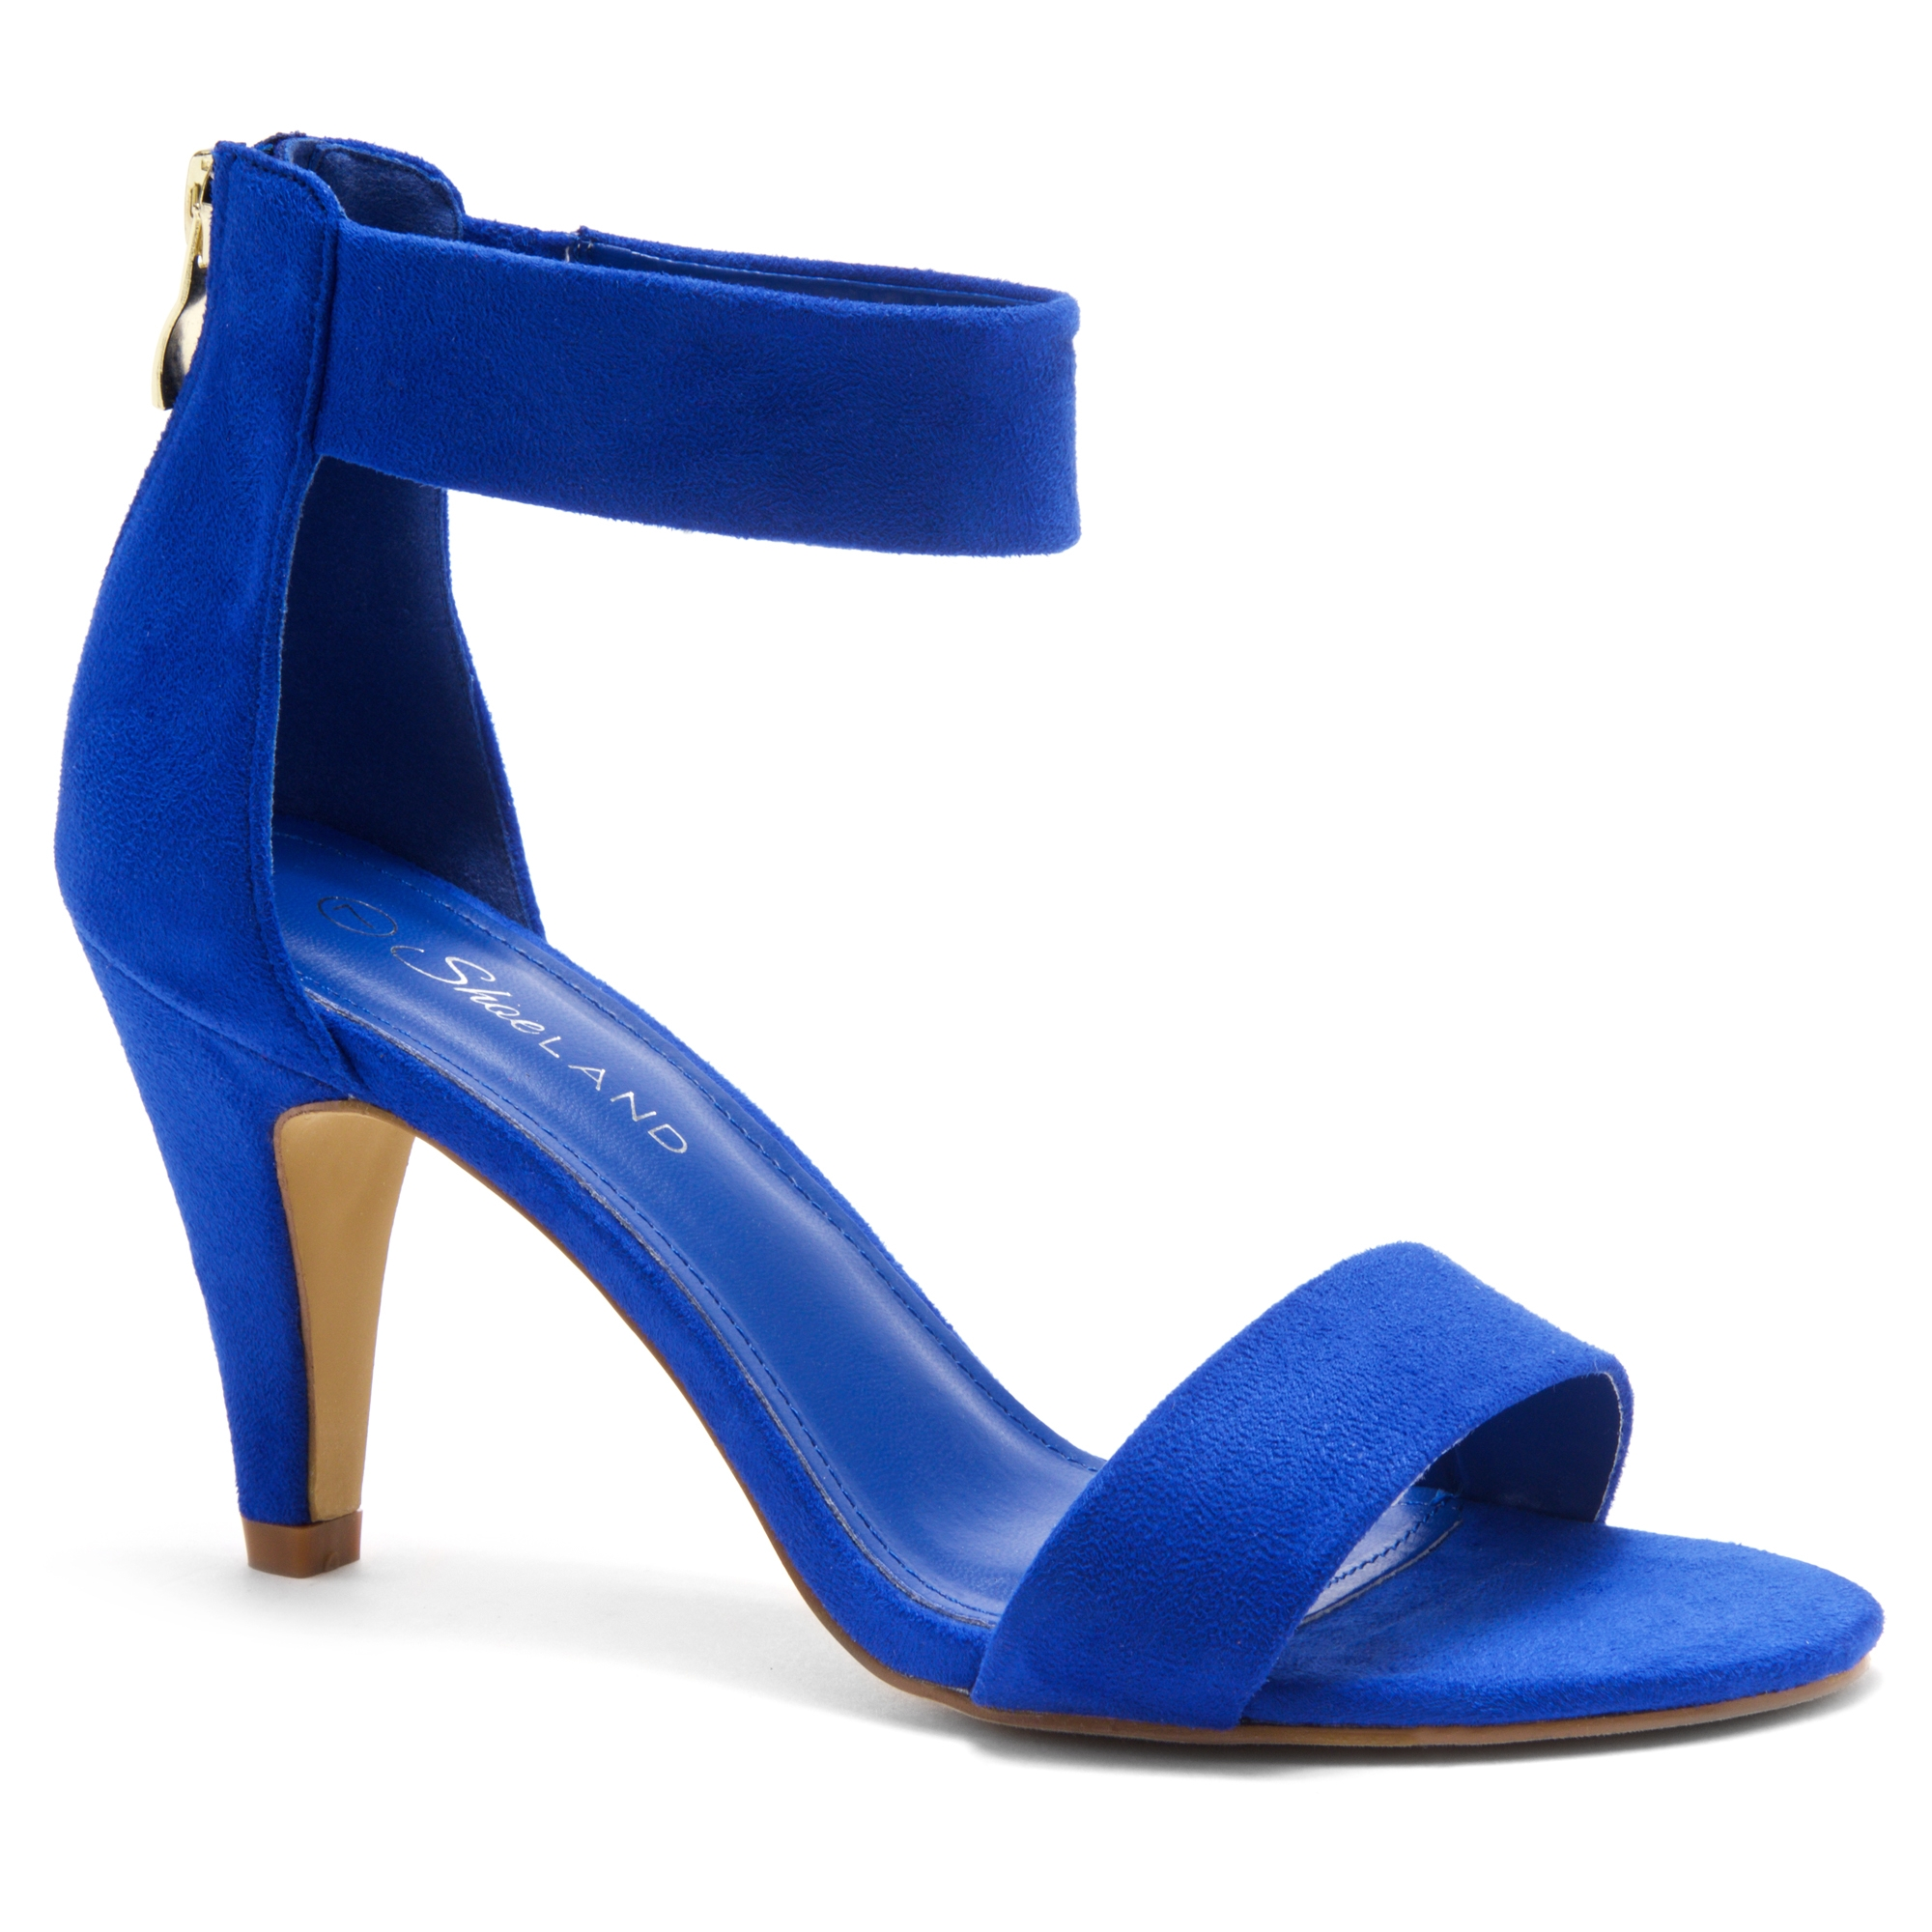 new arrival 8f06f d88bf ... HerStyle RRose-Stiletto heel, back zipper closure (Royal Blue) ...